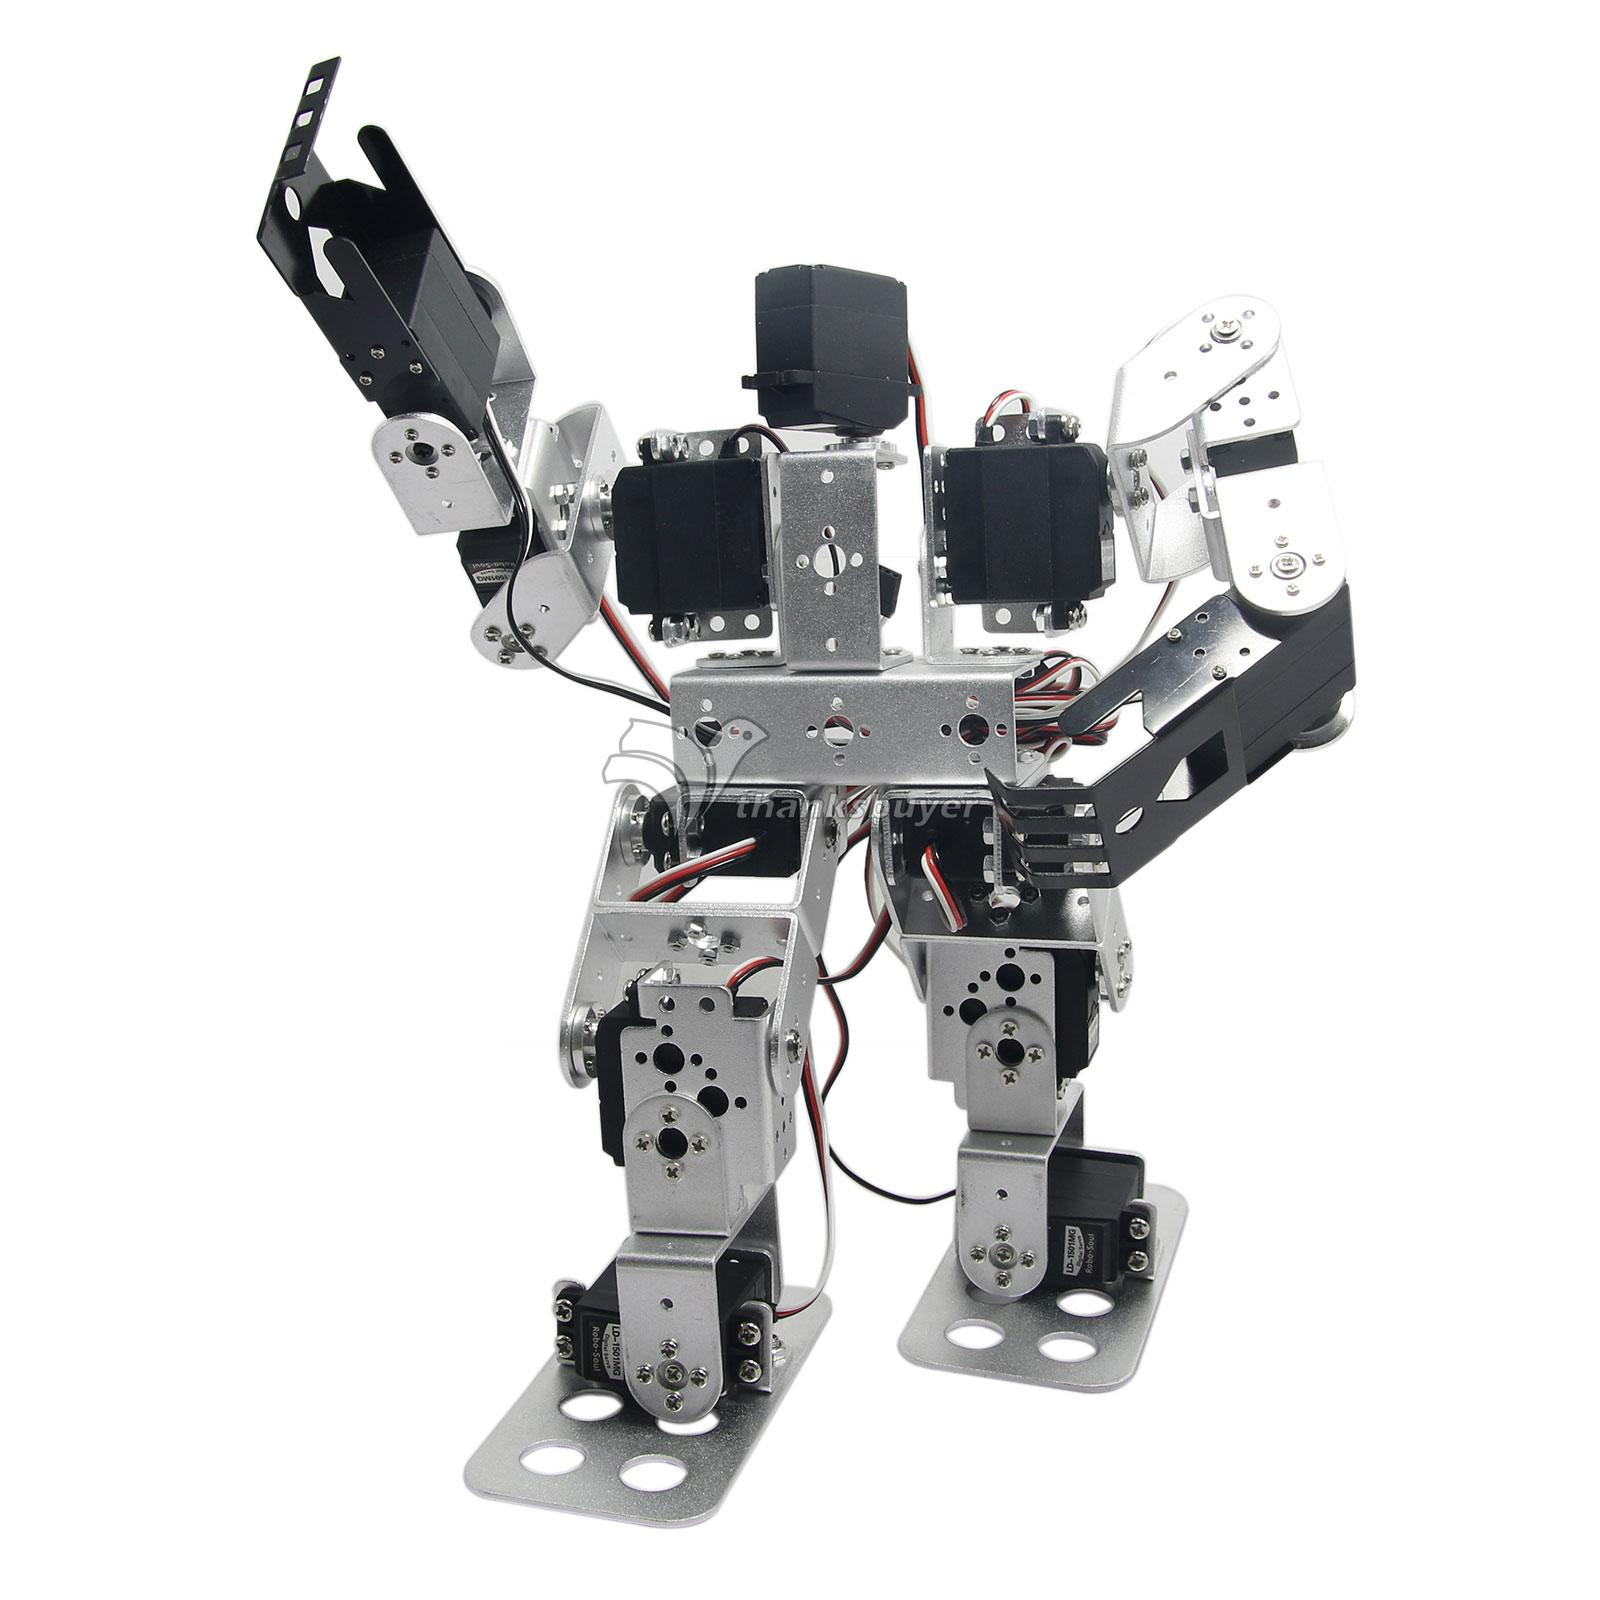 Assembled 13DOF Biped Robotic Educational Robot with LD-1501MG Servo for Racing Dancing new 17 degrees of freedom humanoid biped robot teaching and research biped robot platform model no electronic control system